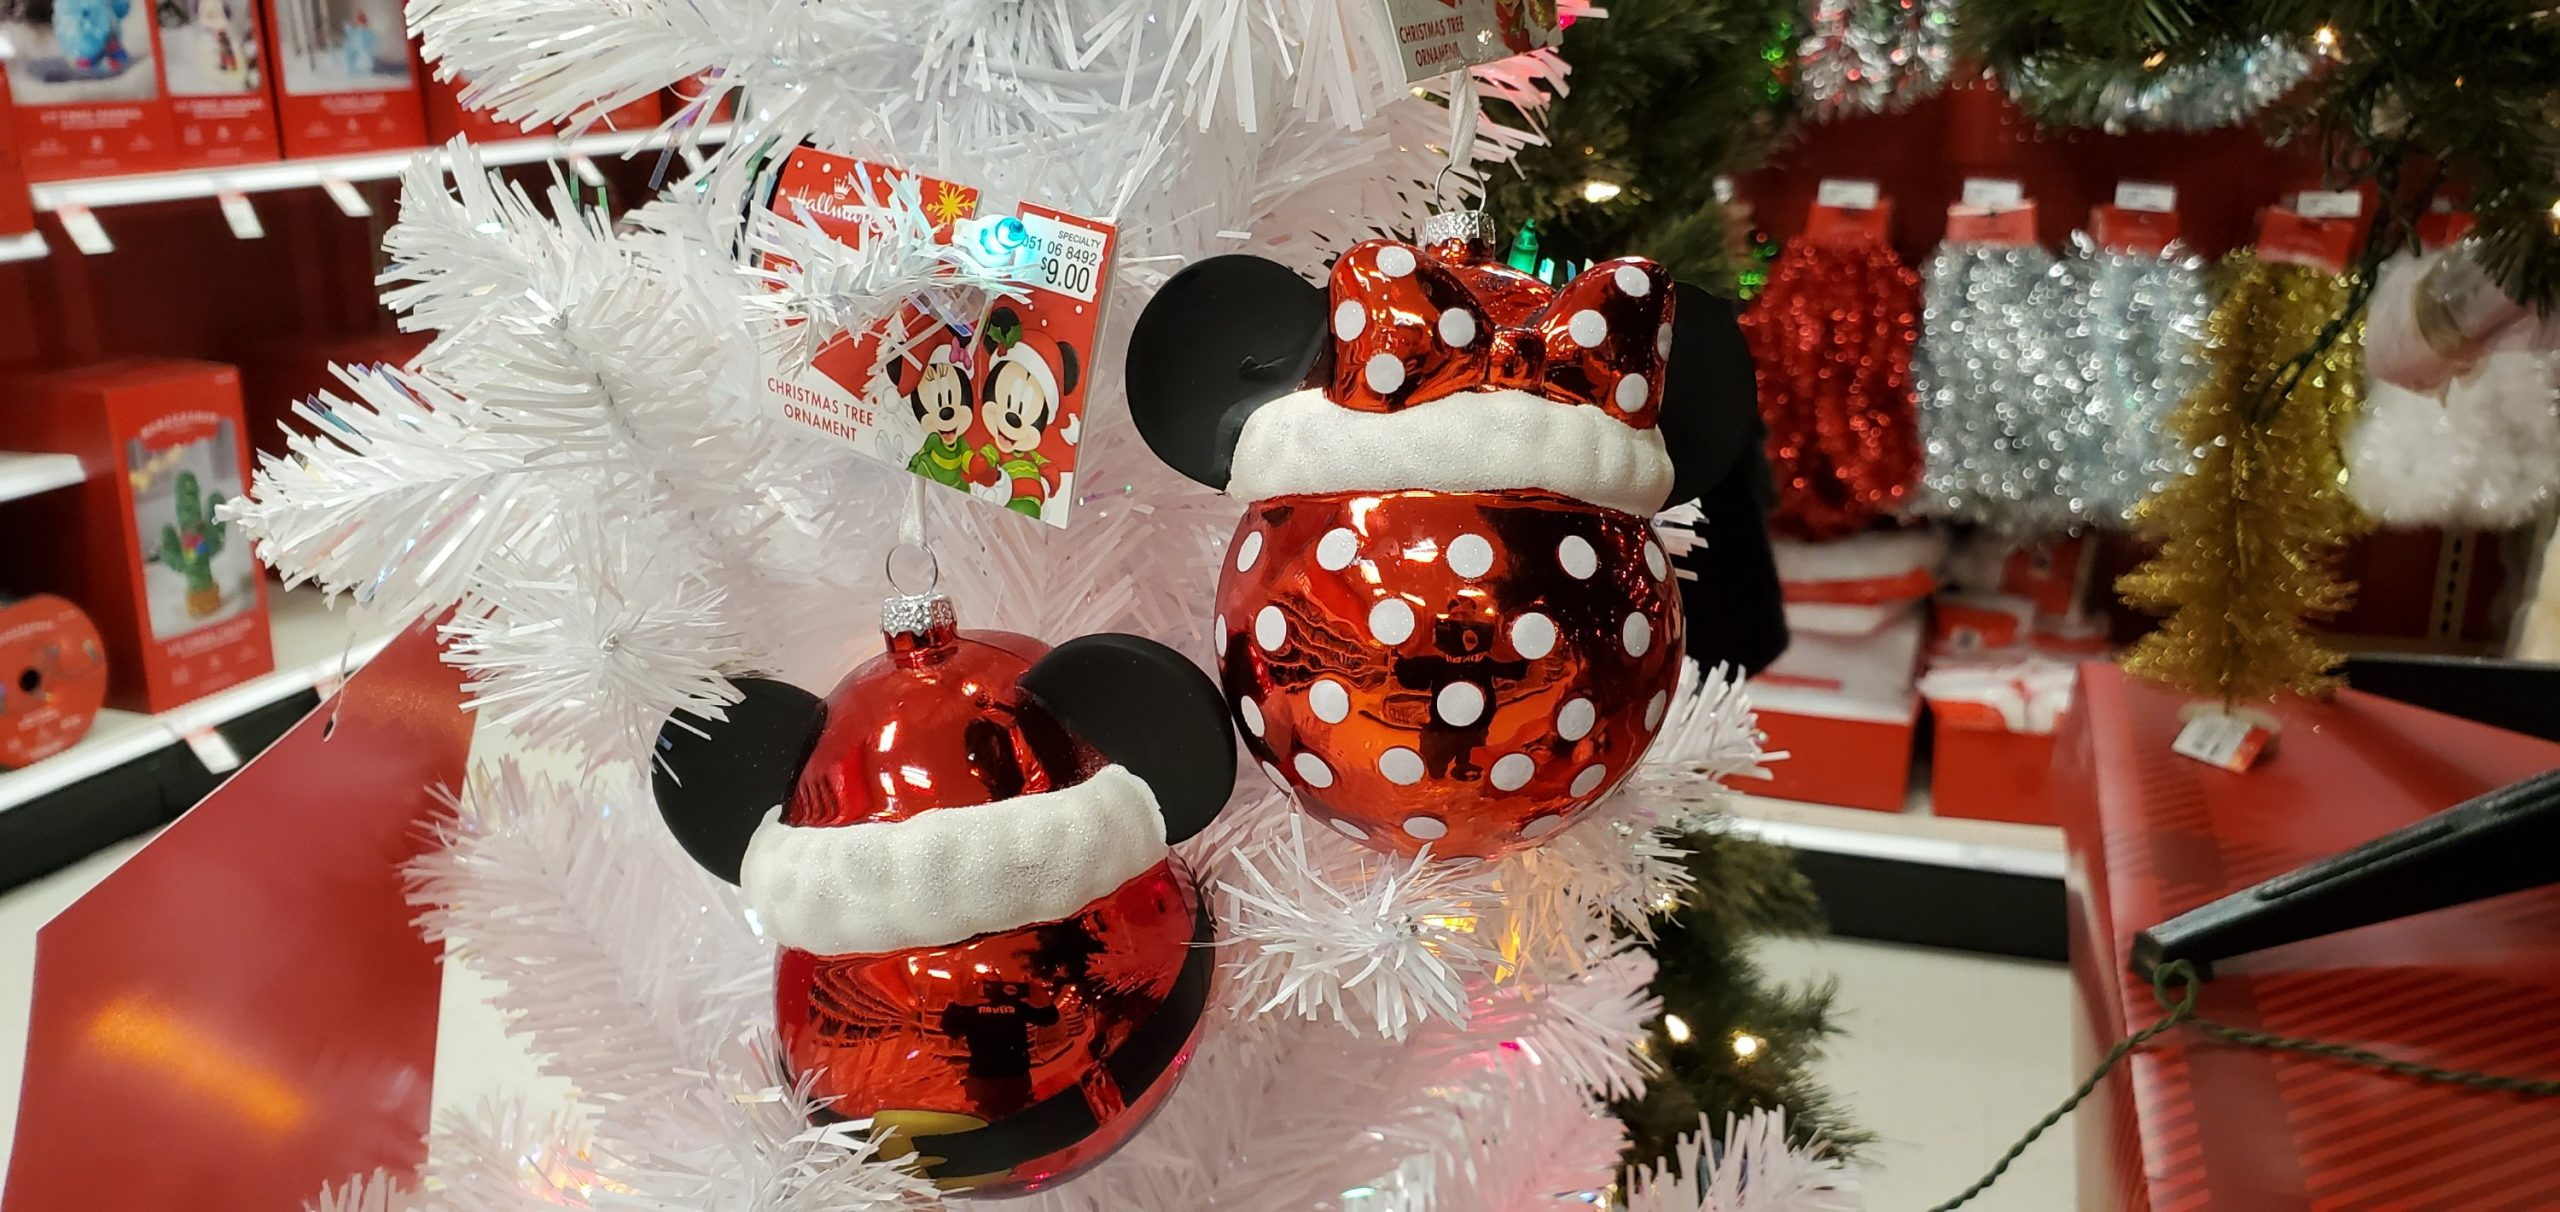 Target Disney Christmas Collection Is Festive And Fun 1